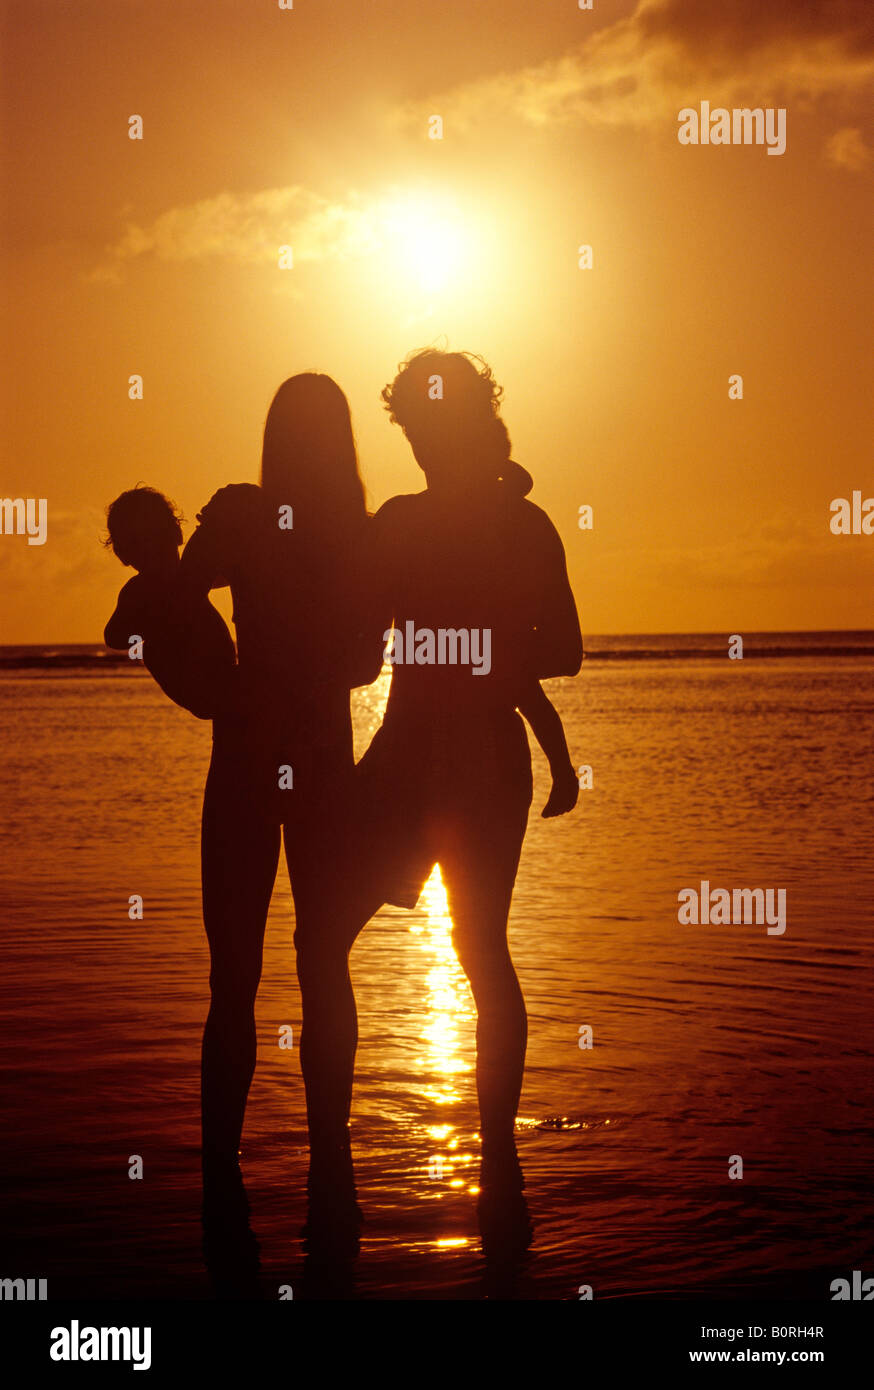 portrait of young family enjoying leisure time at sunset - Stock Image